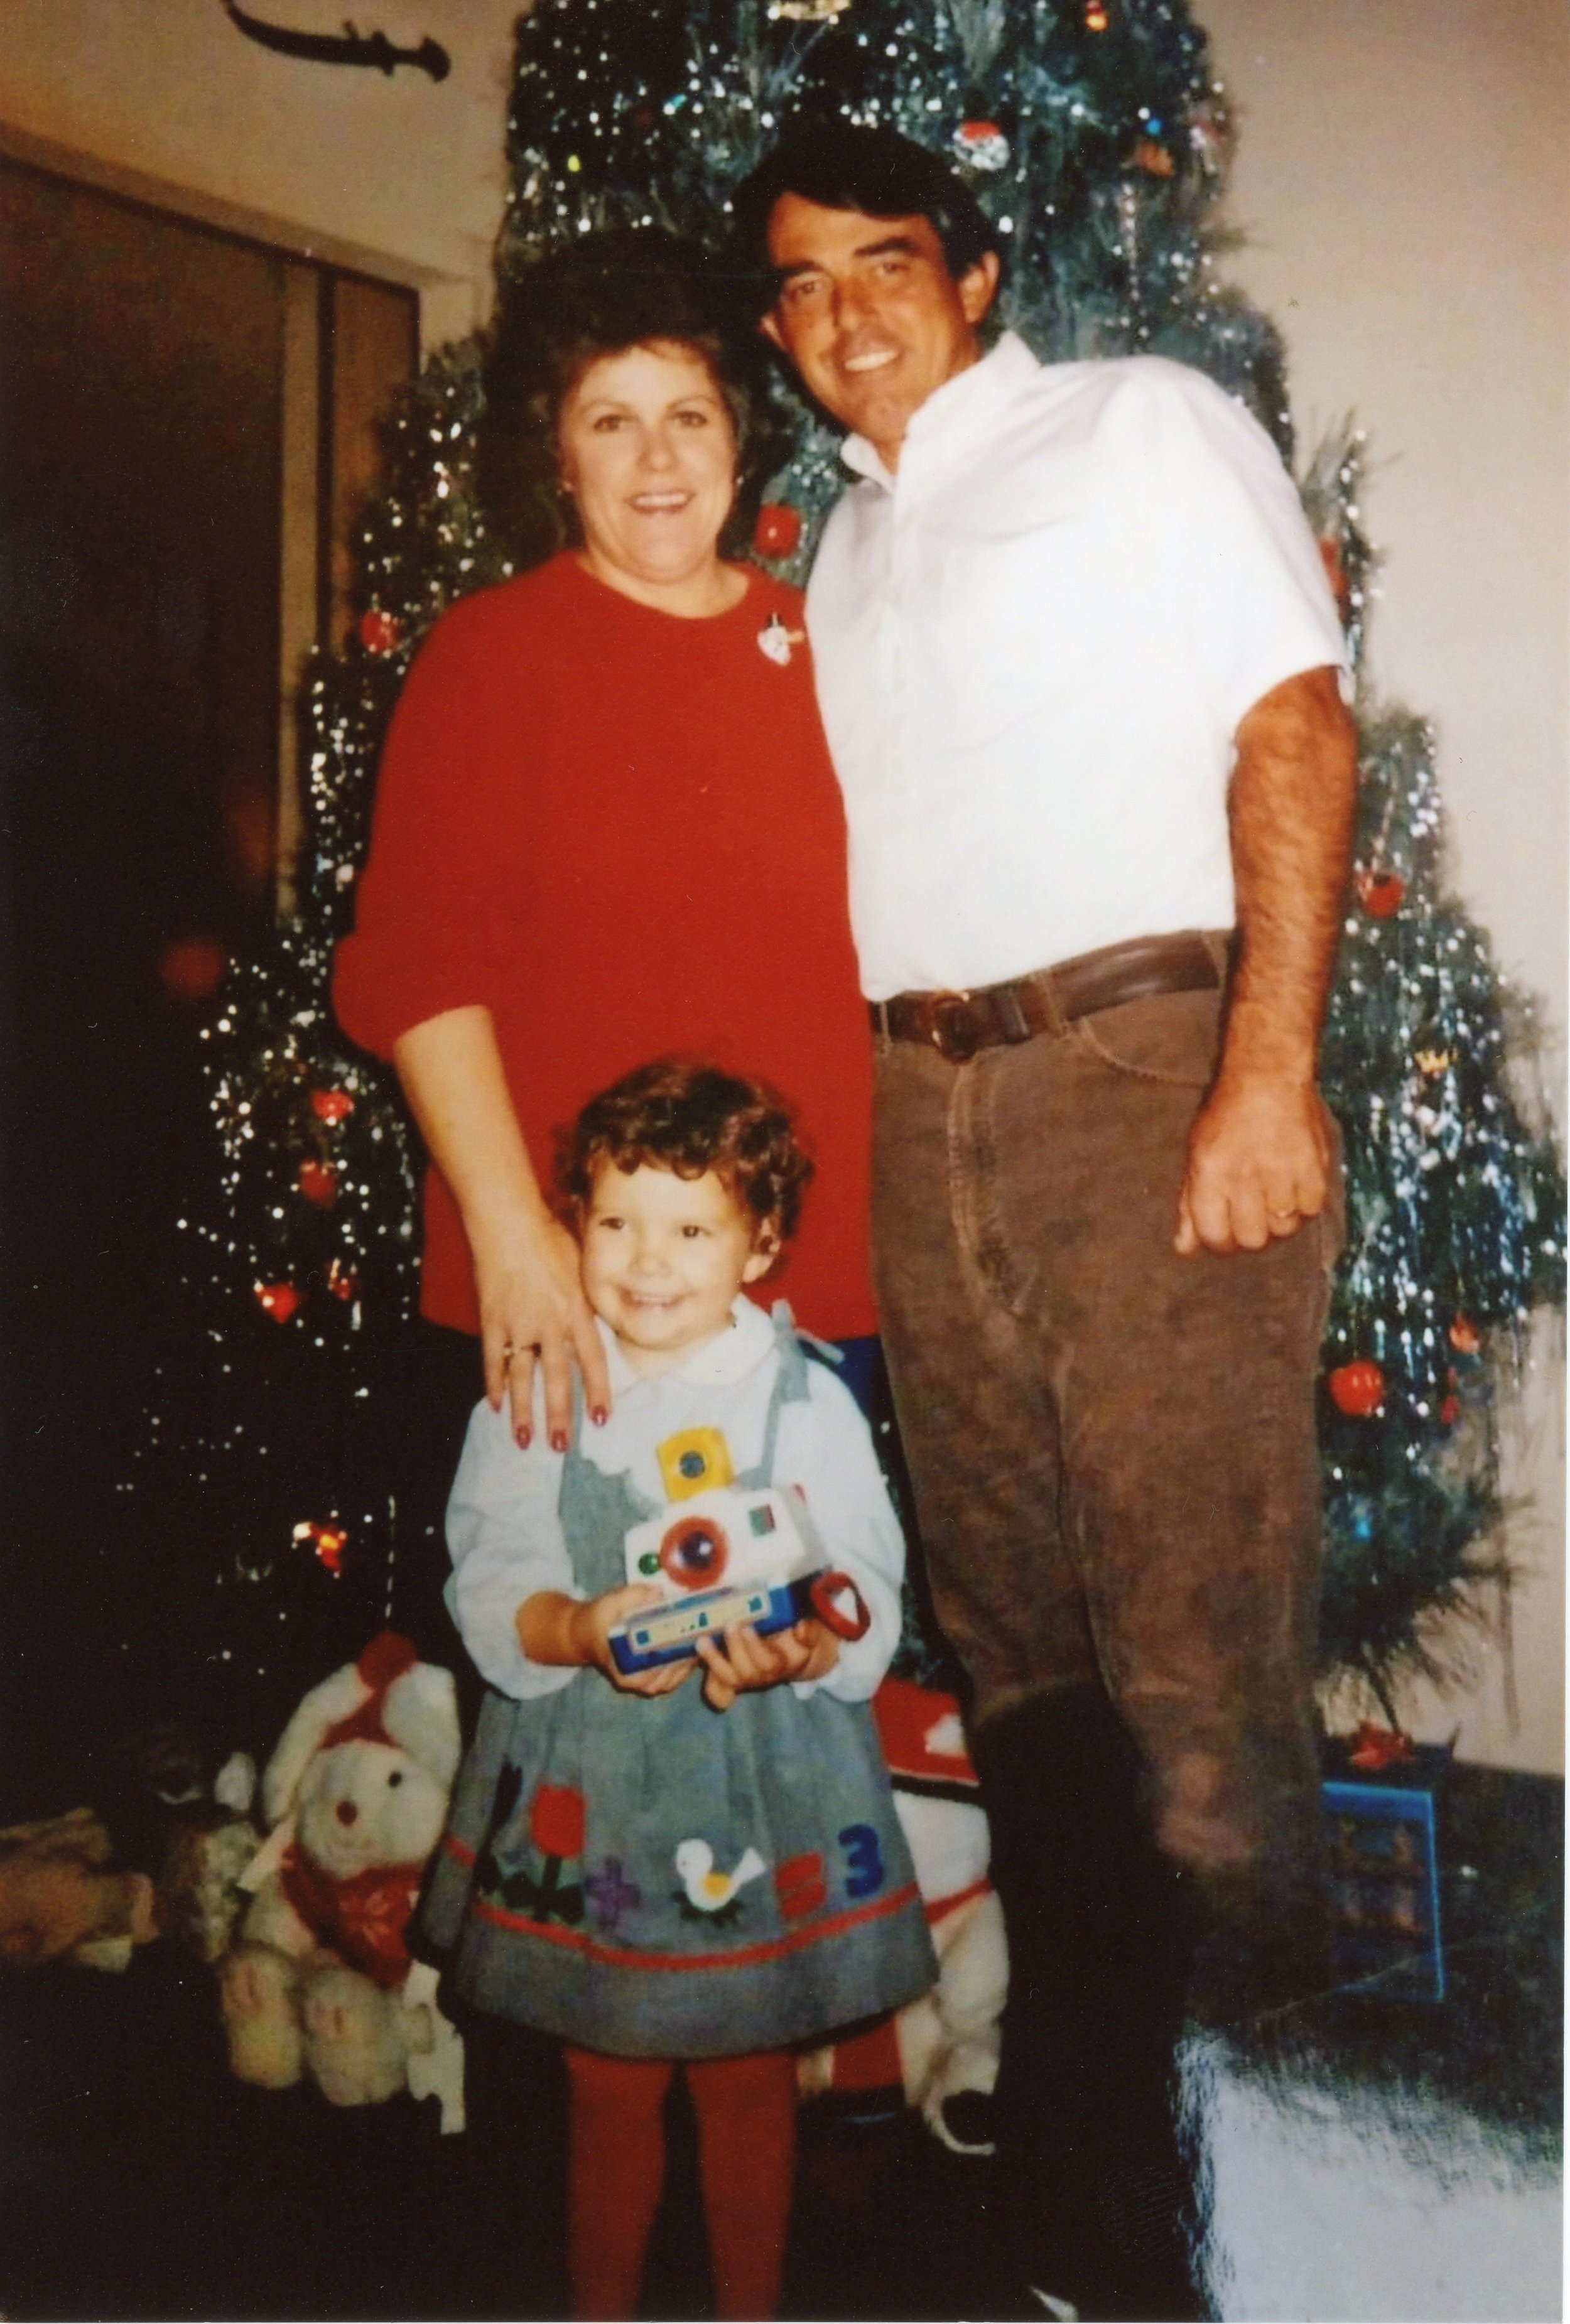 Nana, Poppie, and me (1987) with my first camera